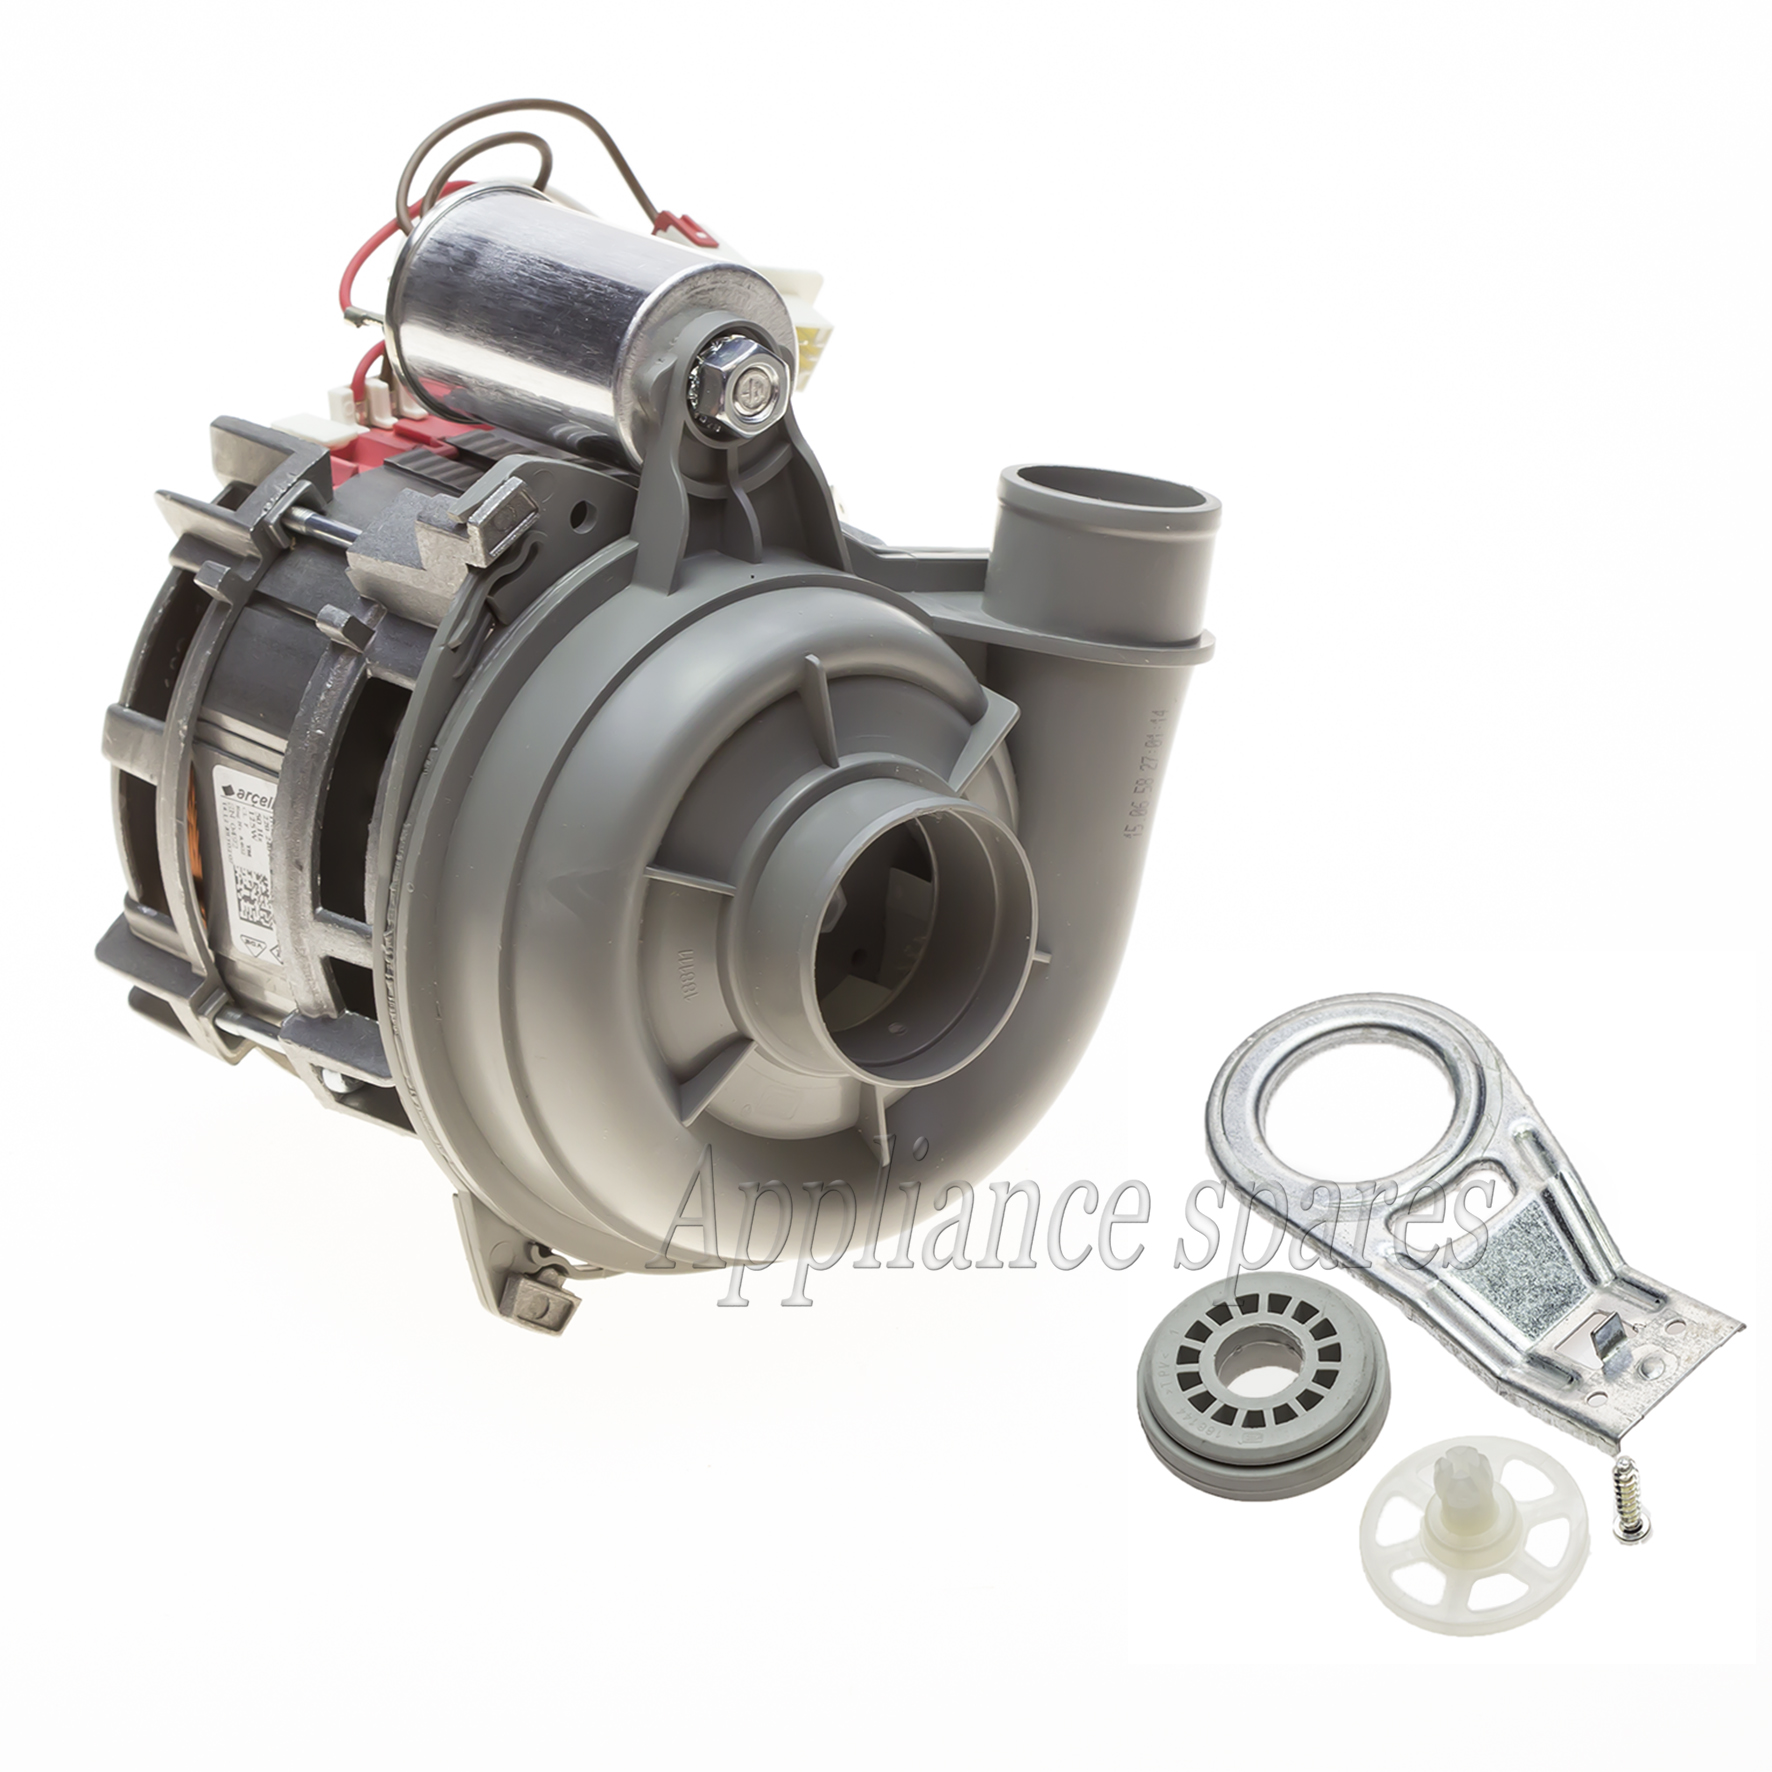 Whirlpool Dishwasher Main Pump Assembly Lategan And Van